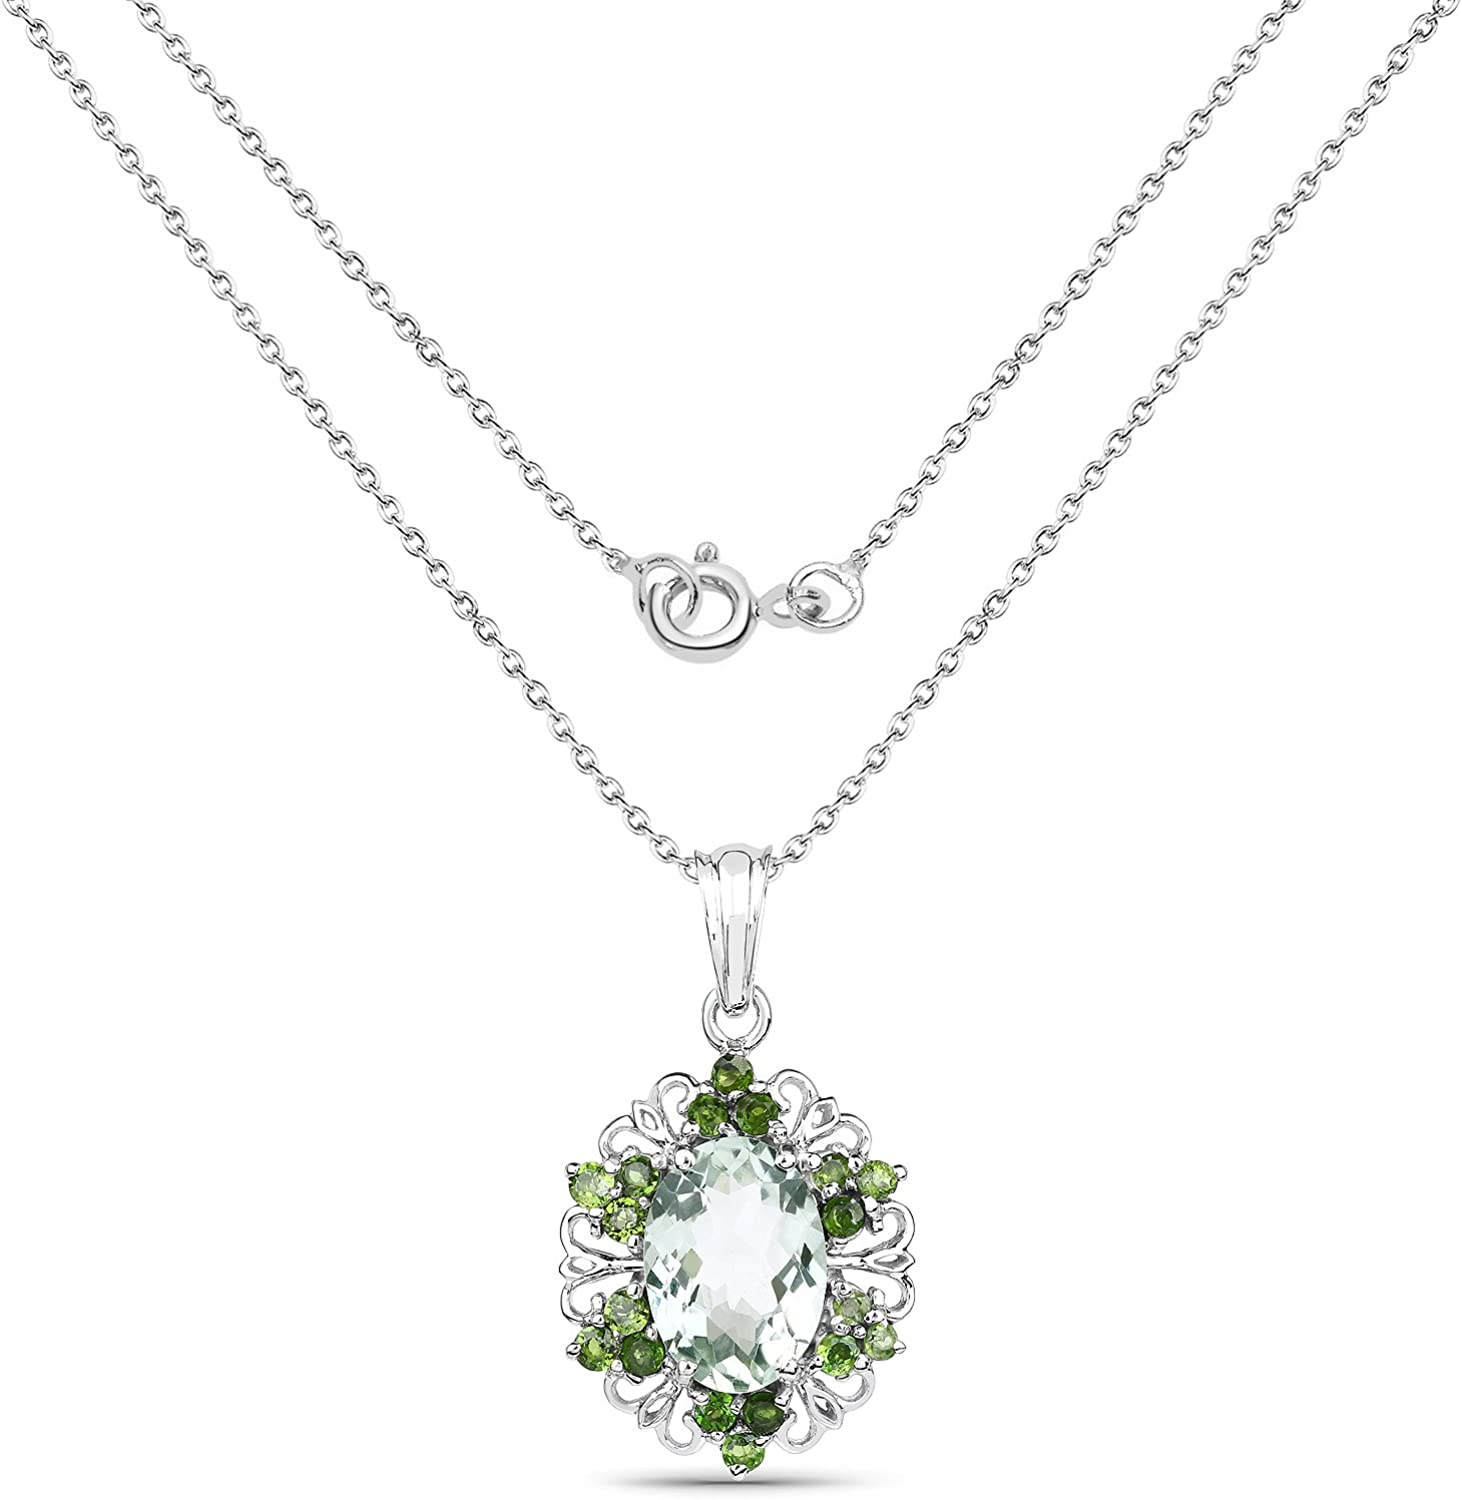 6.47 Carat Genuine Green Amethyst and Chrome Diopside .925 Sterling Silver Pendant